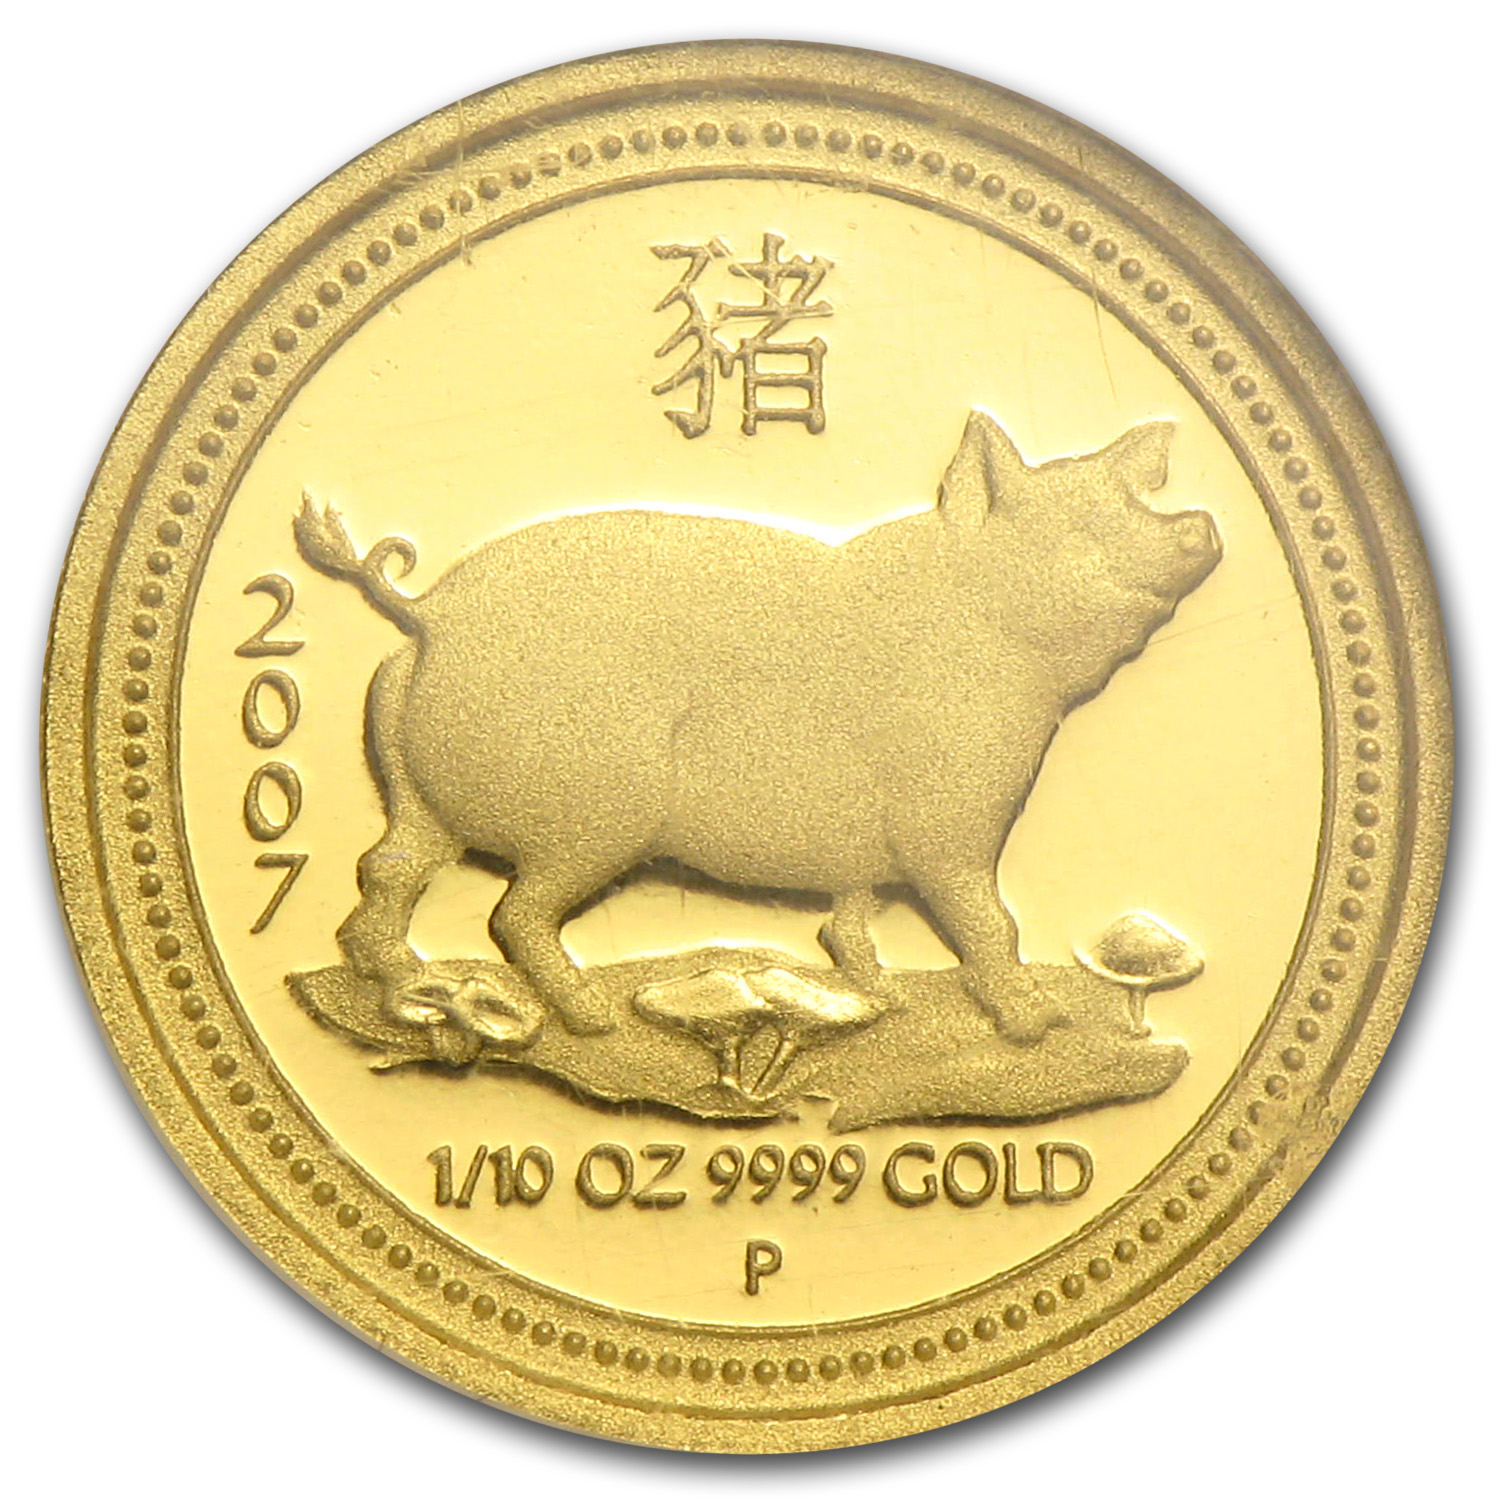 2007 1/10 oz Proof Gold Year of the Pig Lunar Coin (SI) PF-70 NGC